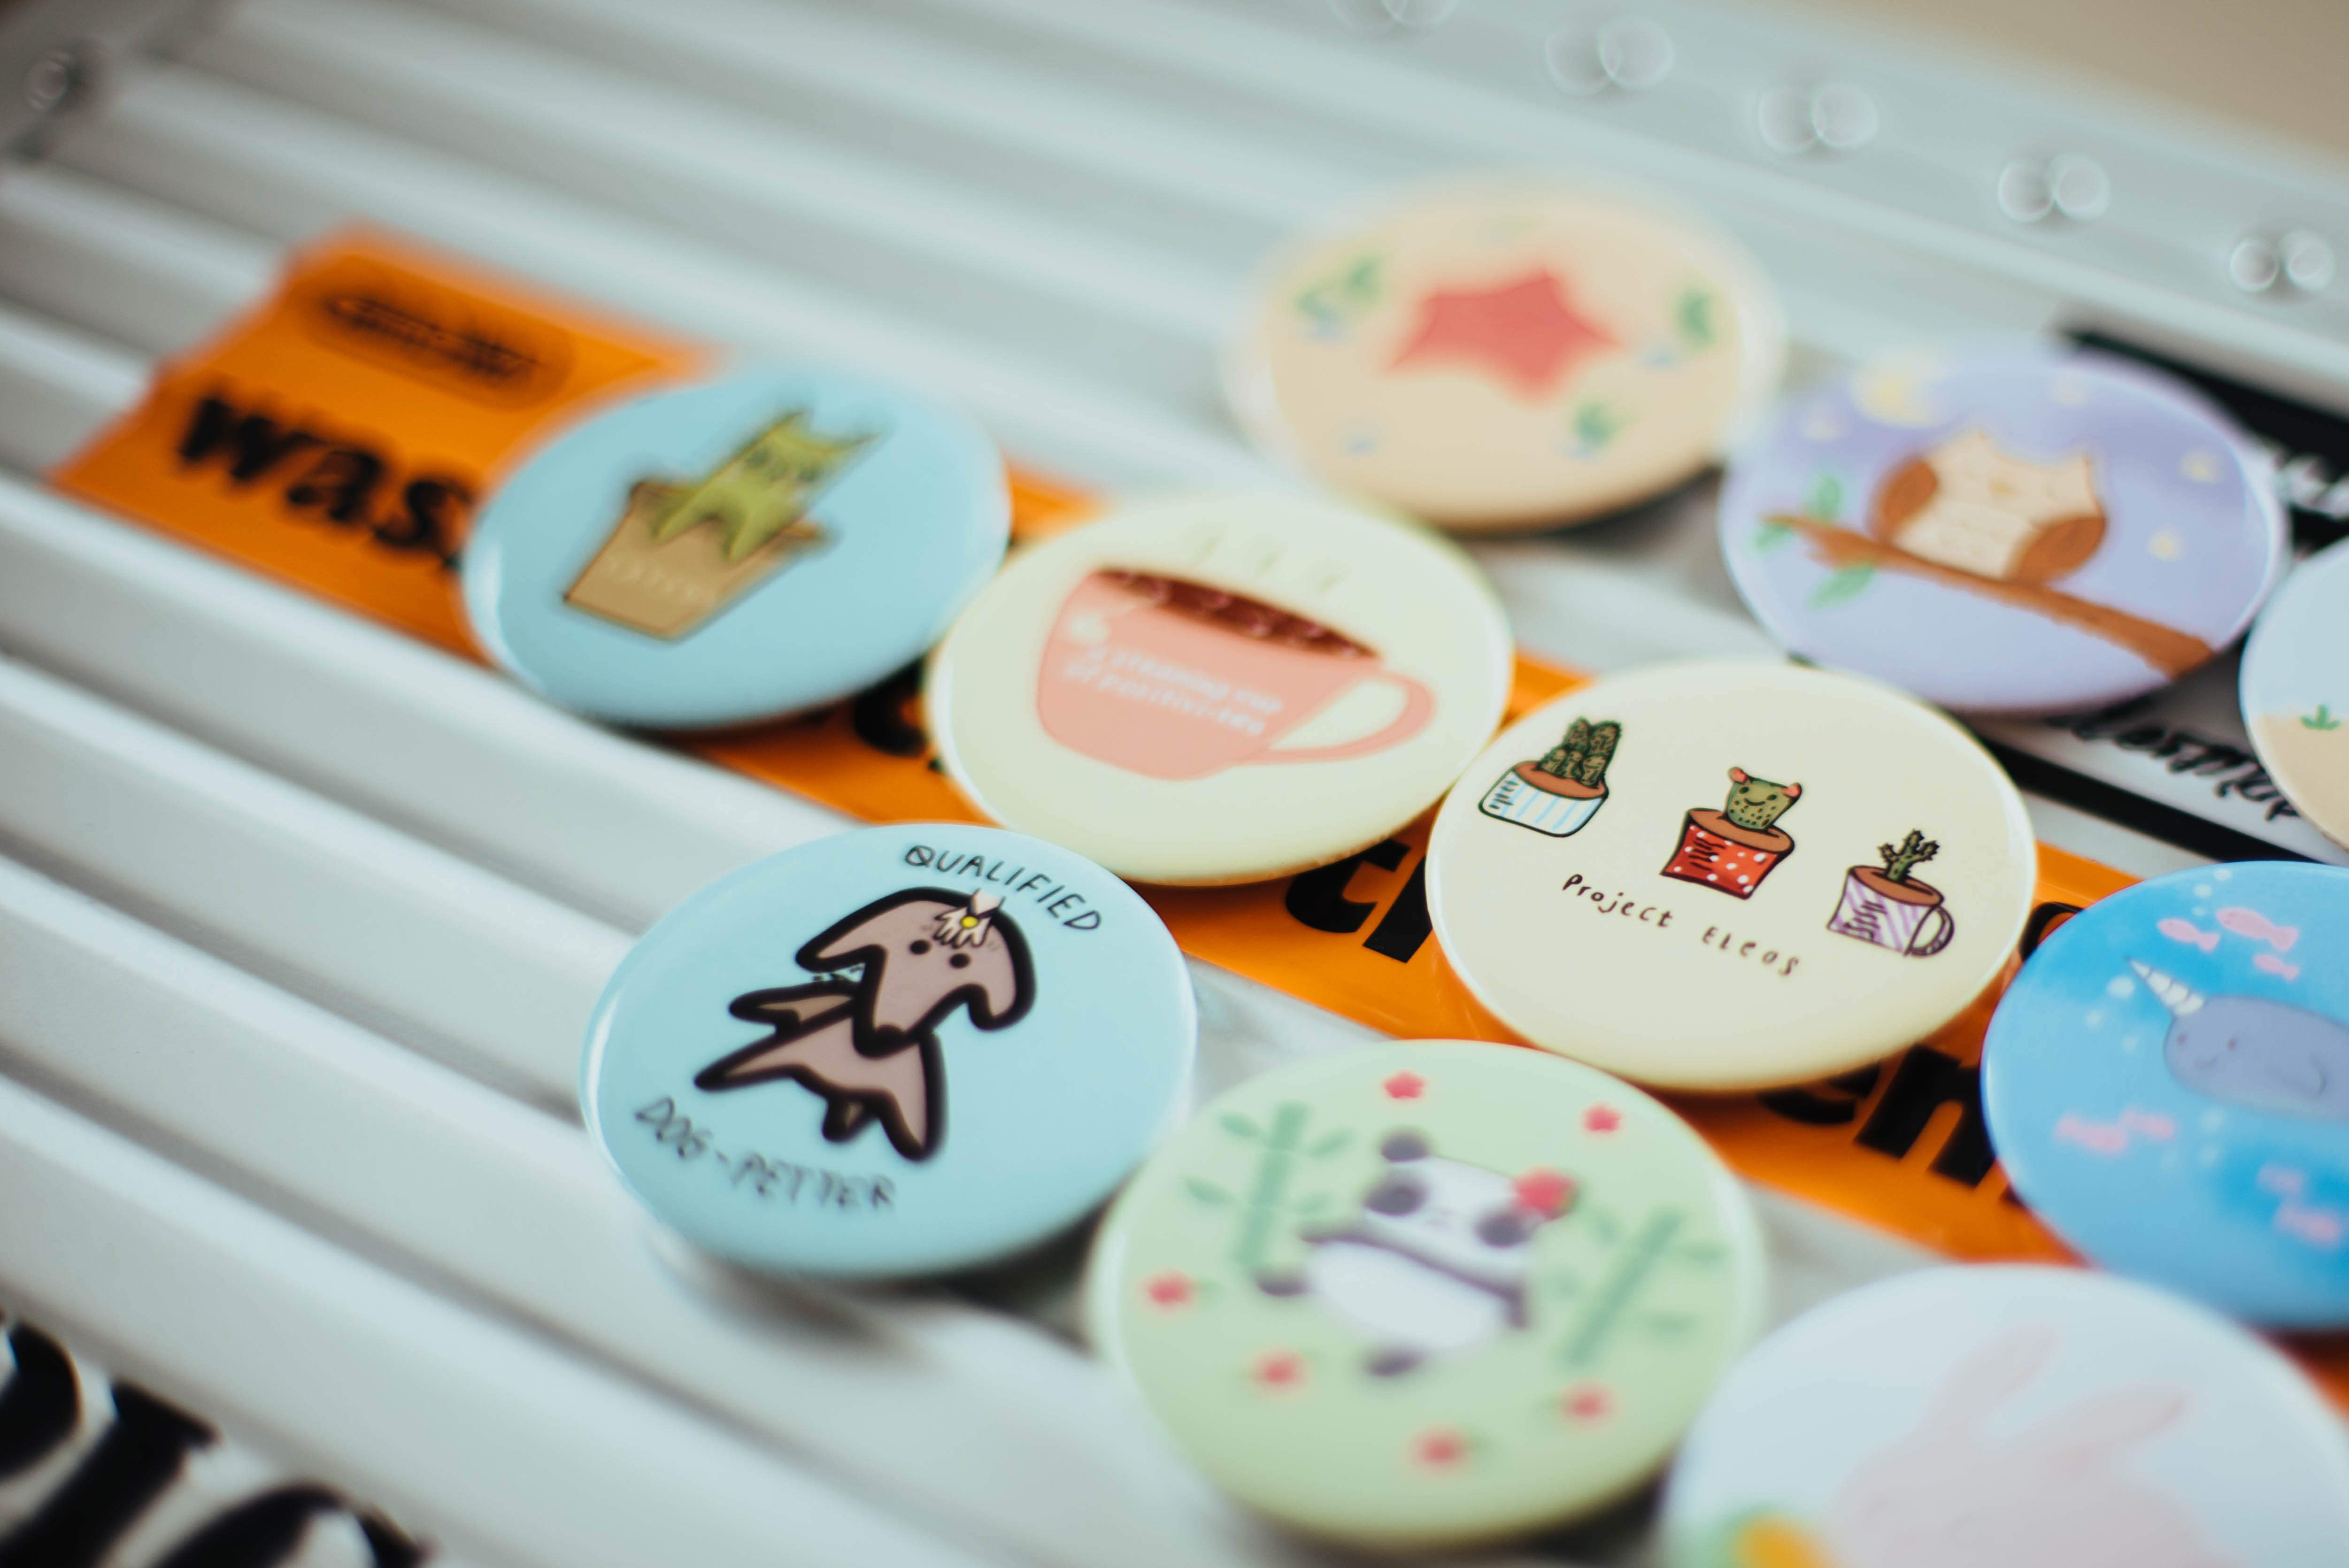 assorted-color button pins on top of white surface